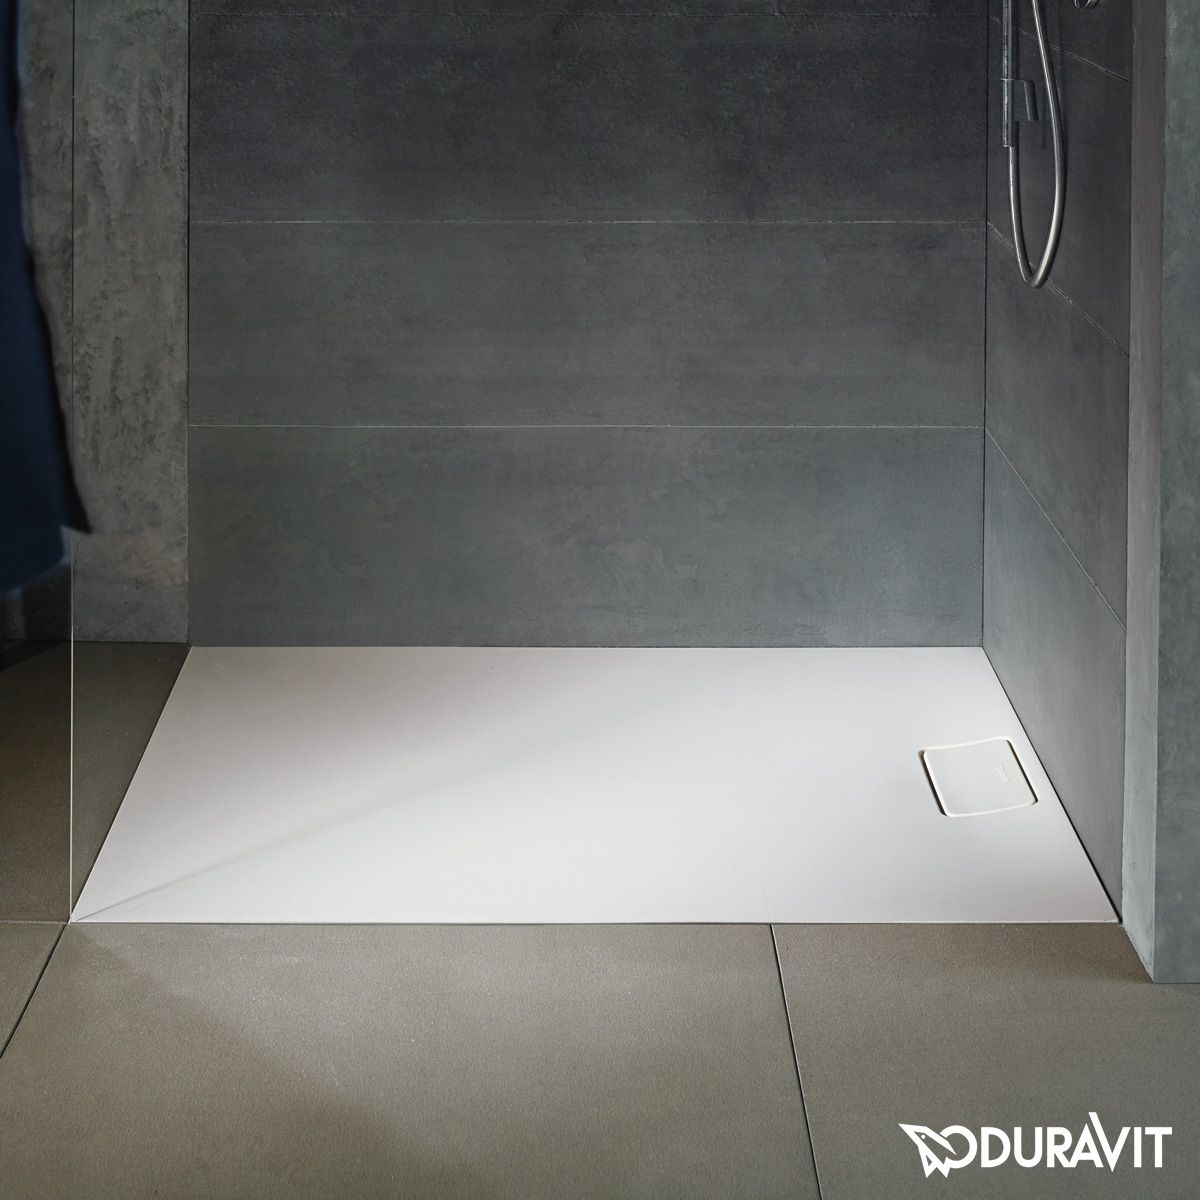 Duravit rectangular shower tray white